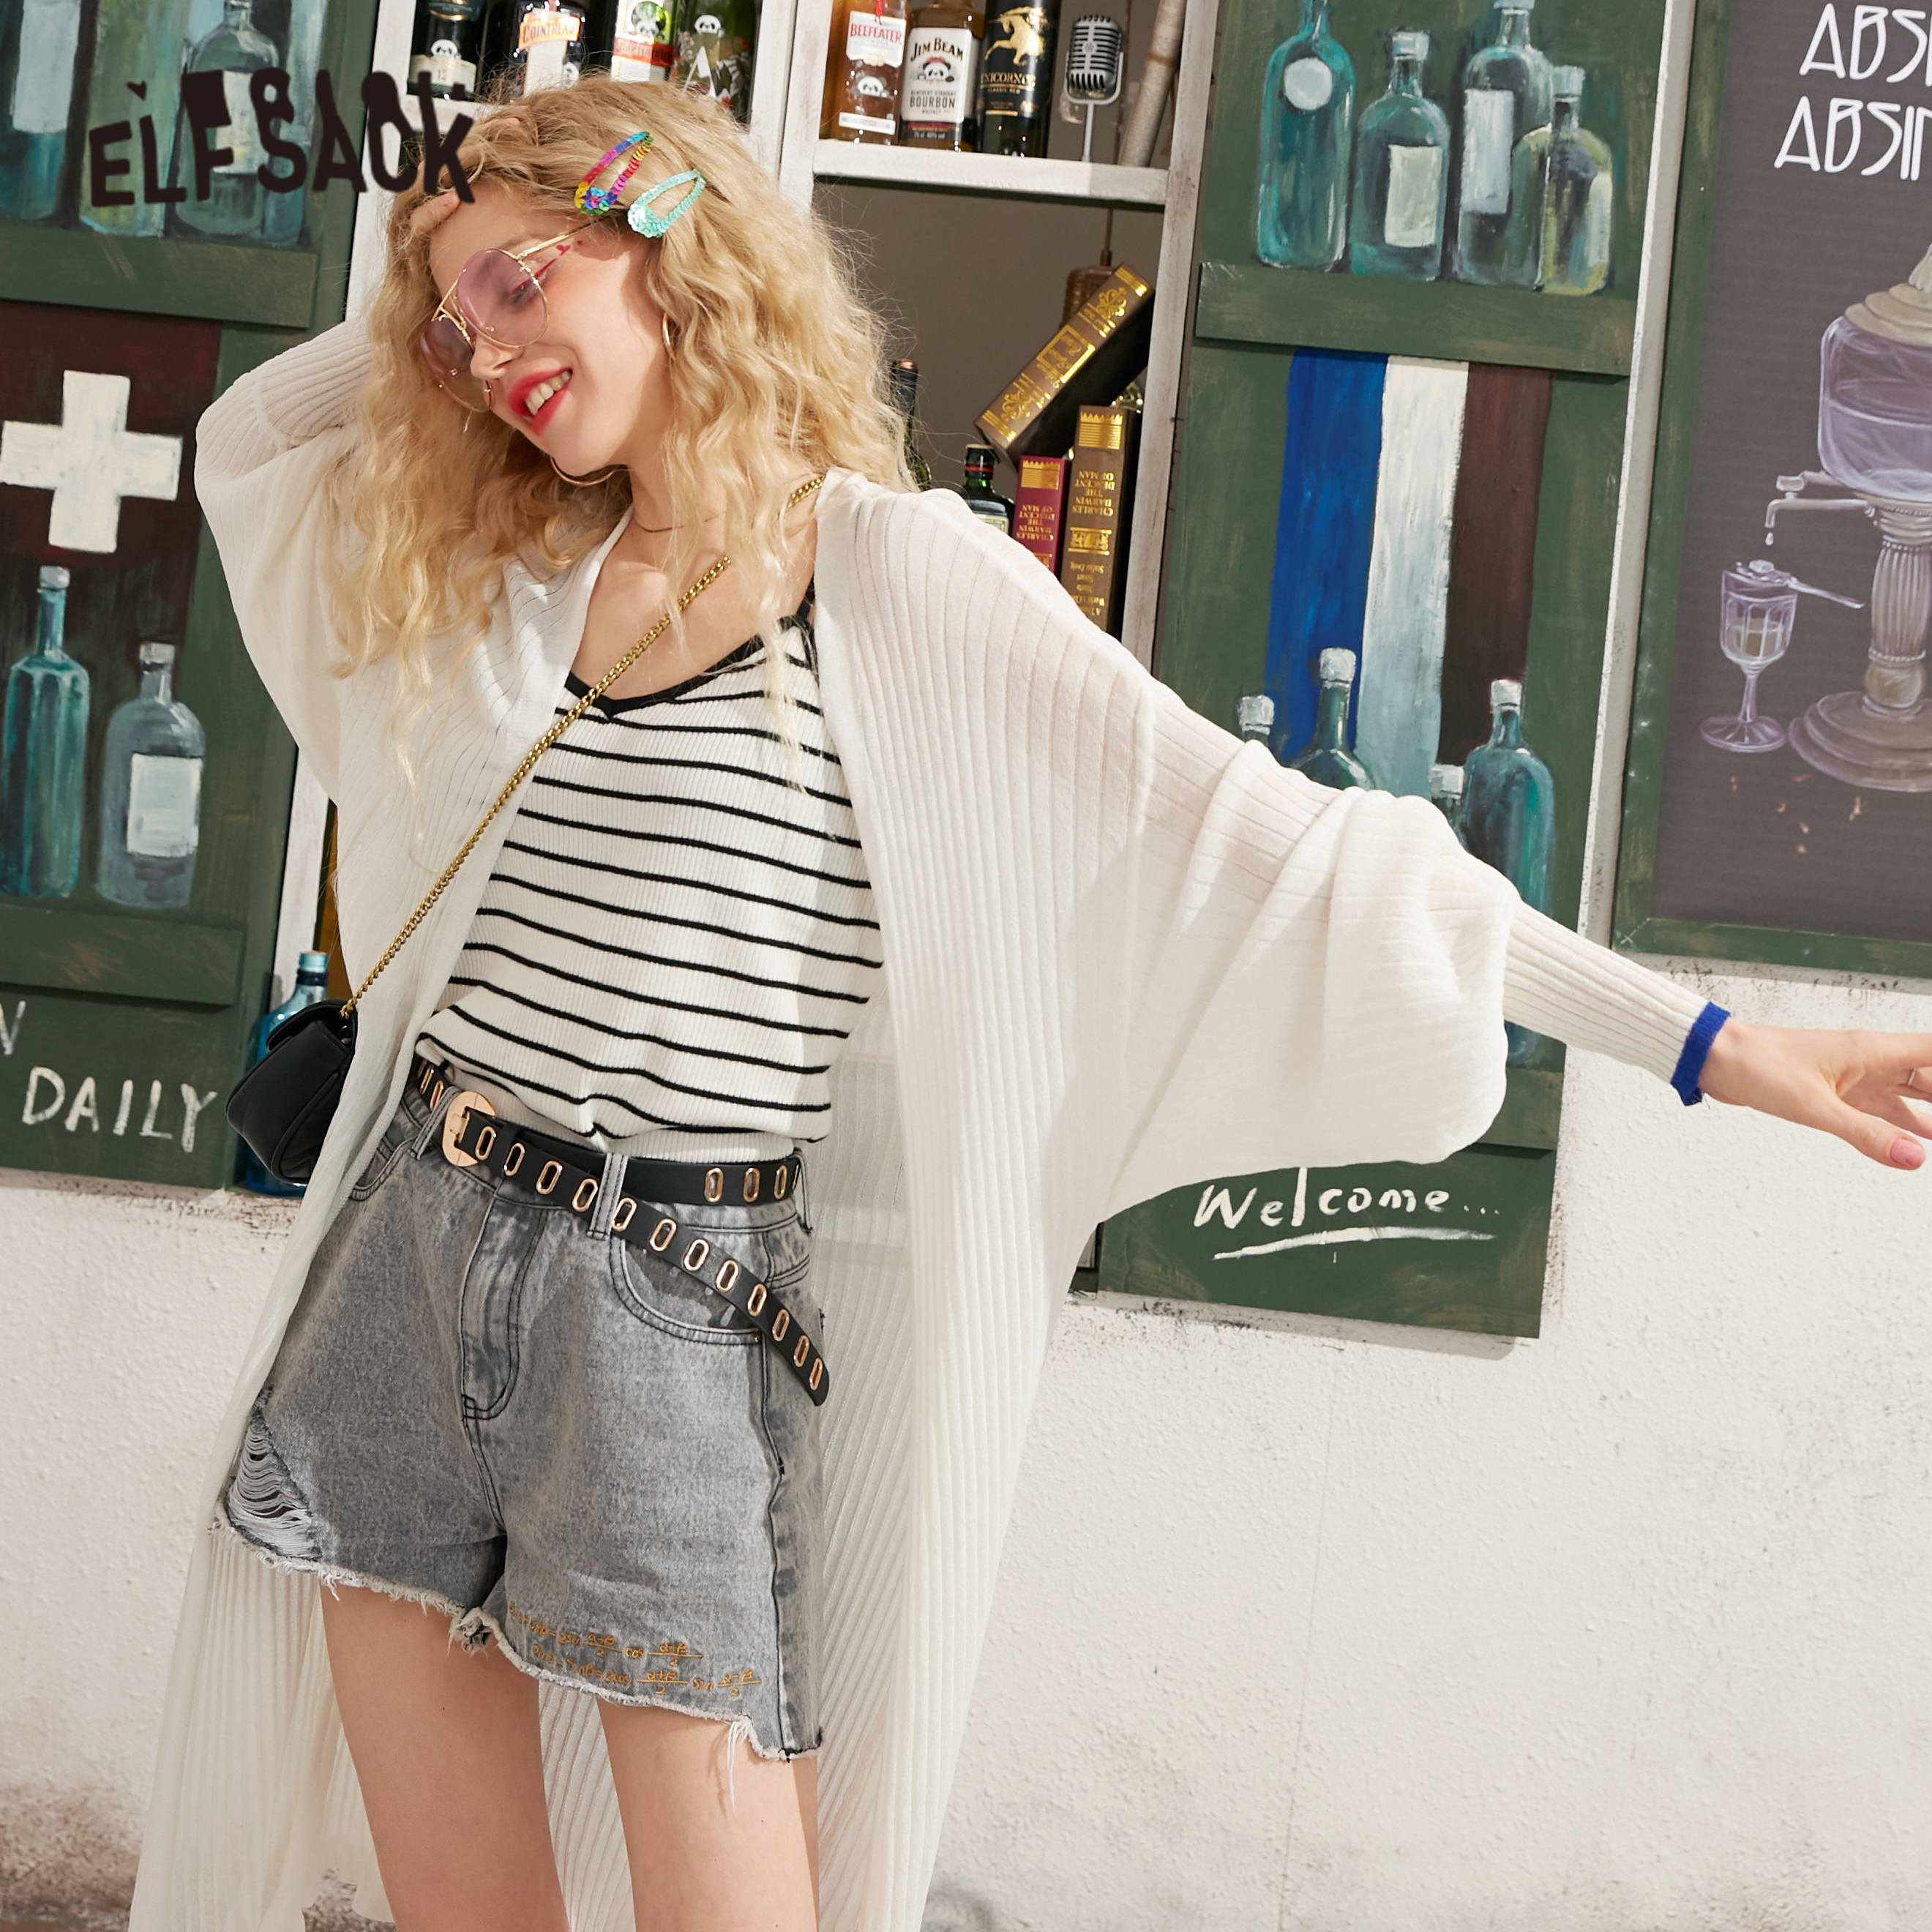 ELFSACK Black Solid Minimalist Knitted Casual Long Women Cardigans 2020 Spring White Pure Frill Lantern Sleeve Female Daily Tops